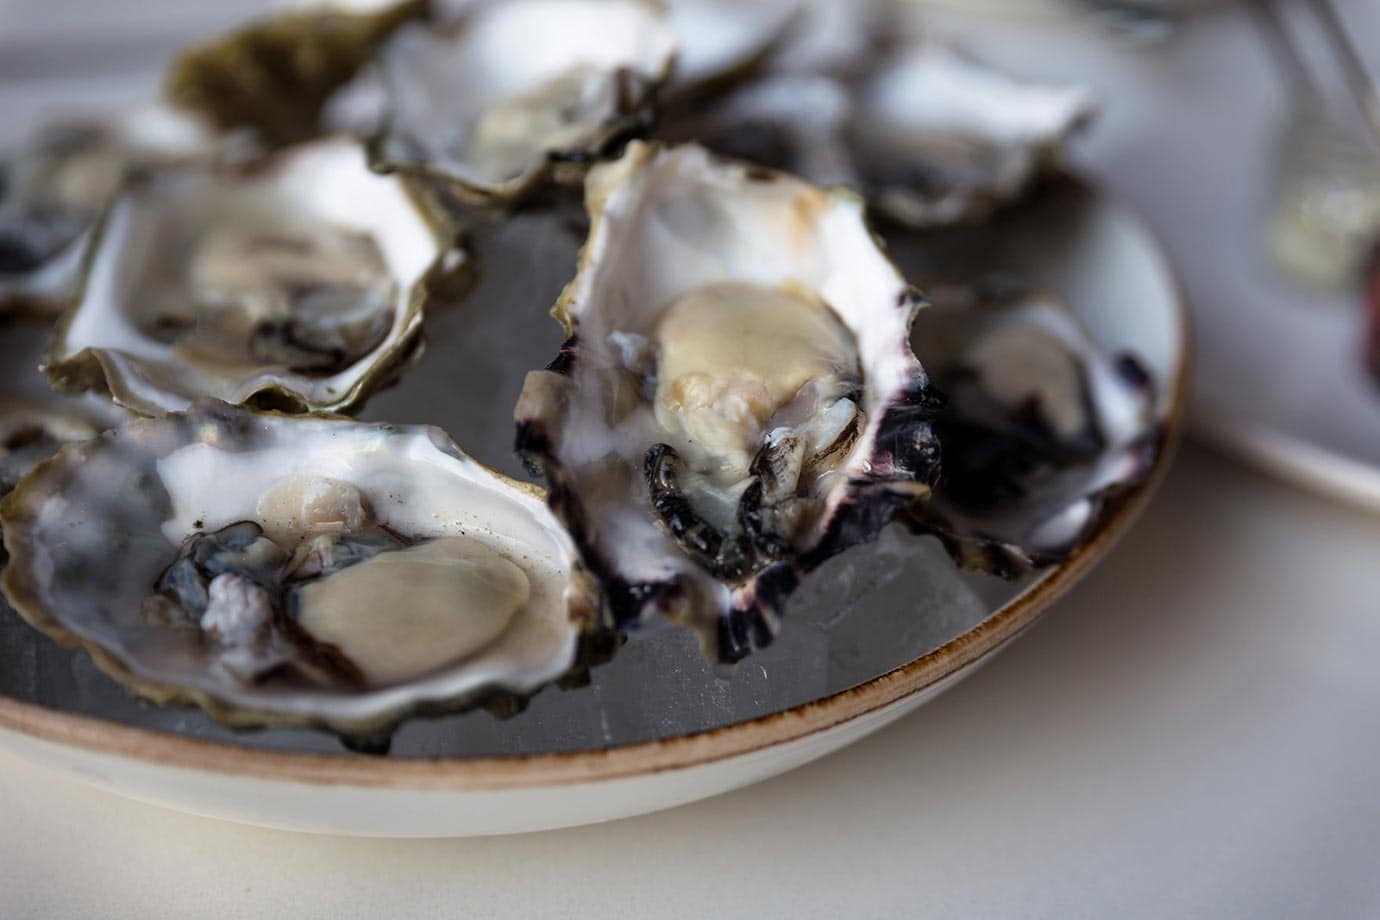 Fresh oysters at the Fairmont Waterfront